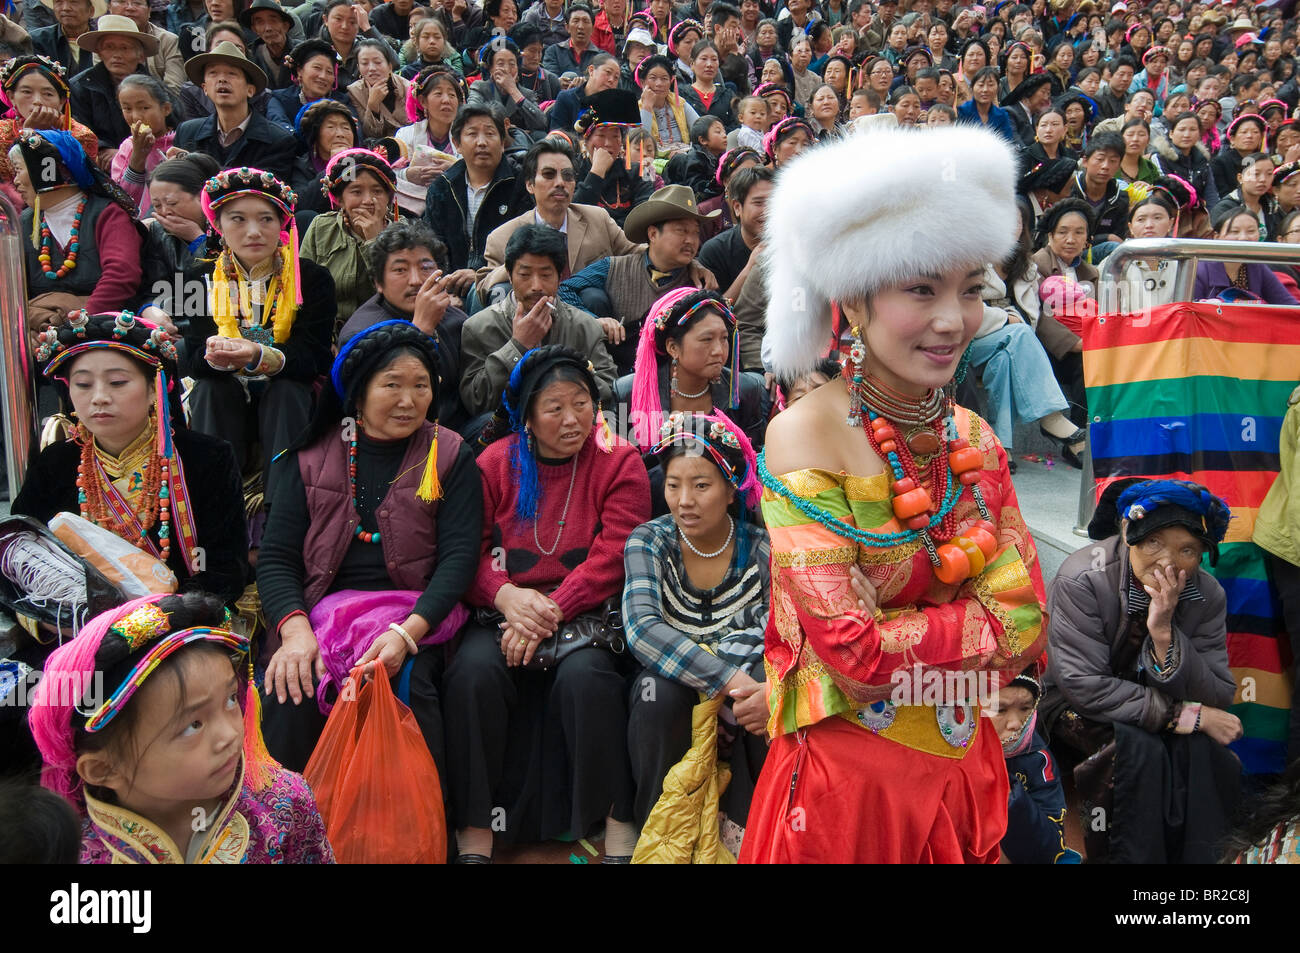 Singer wearing Ethnic Tibetan costume and jewelry waits to perform at folk festival, Danba, Sichuan Province, China - Stock Image